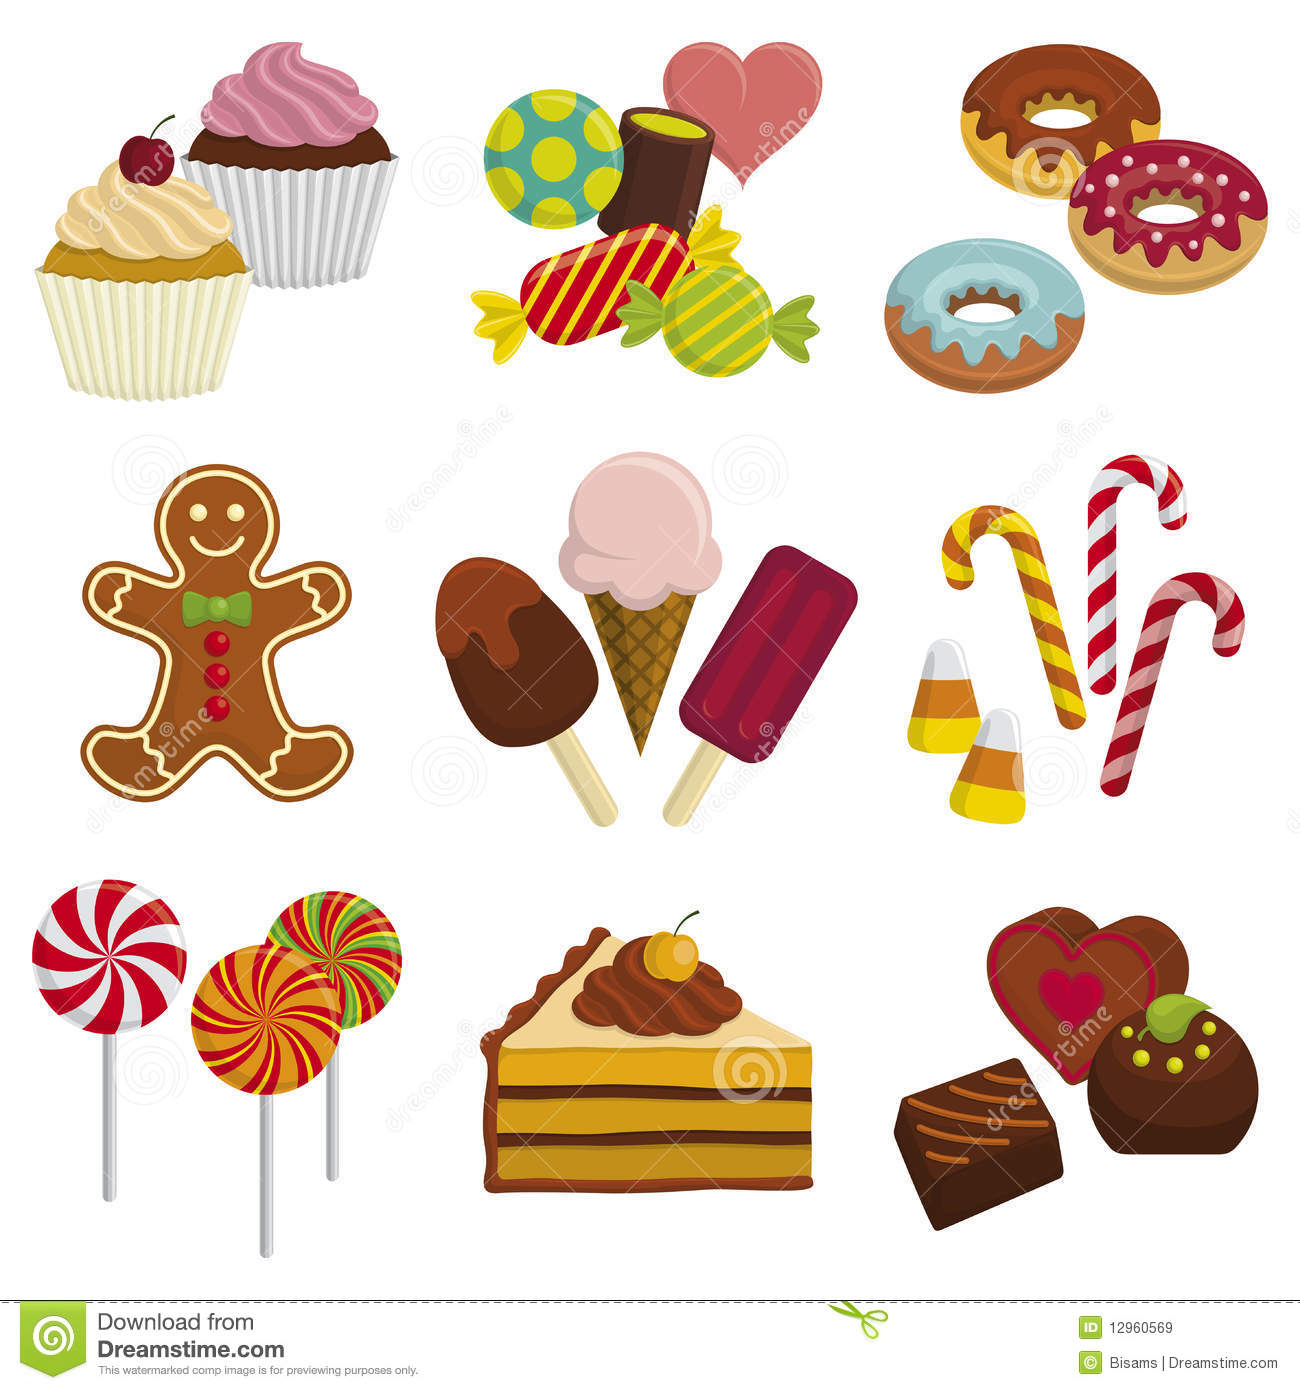 Sweet foods clipart vector black and white stock Food Sweet Clipart Clipart Kid - Free Clipart vector black and white stock